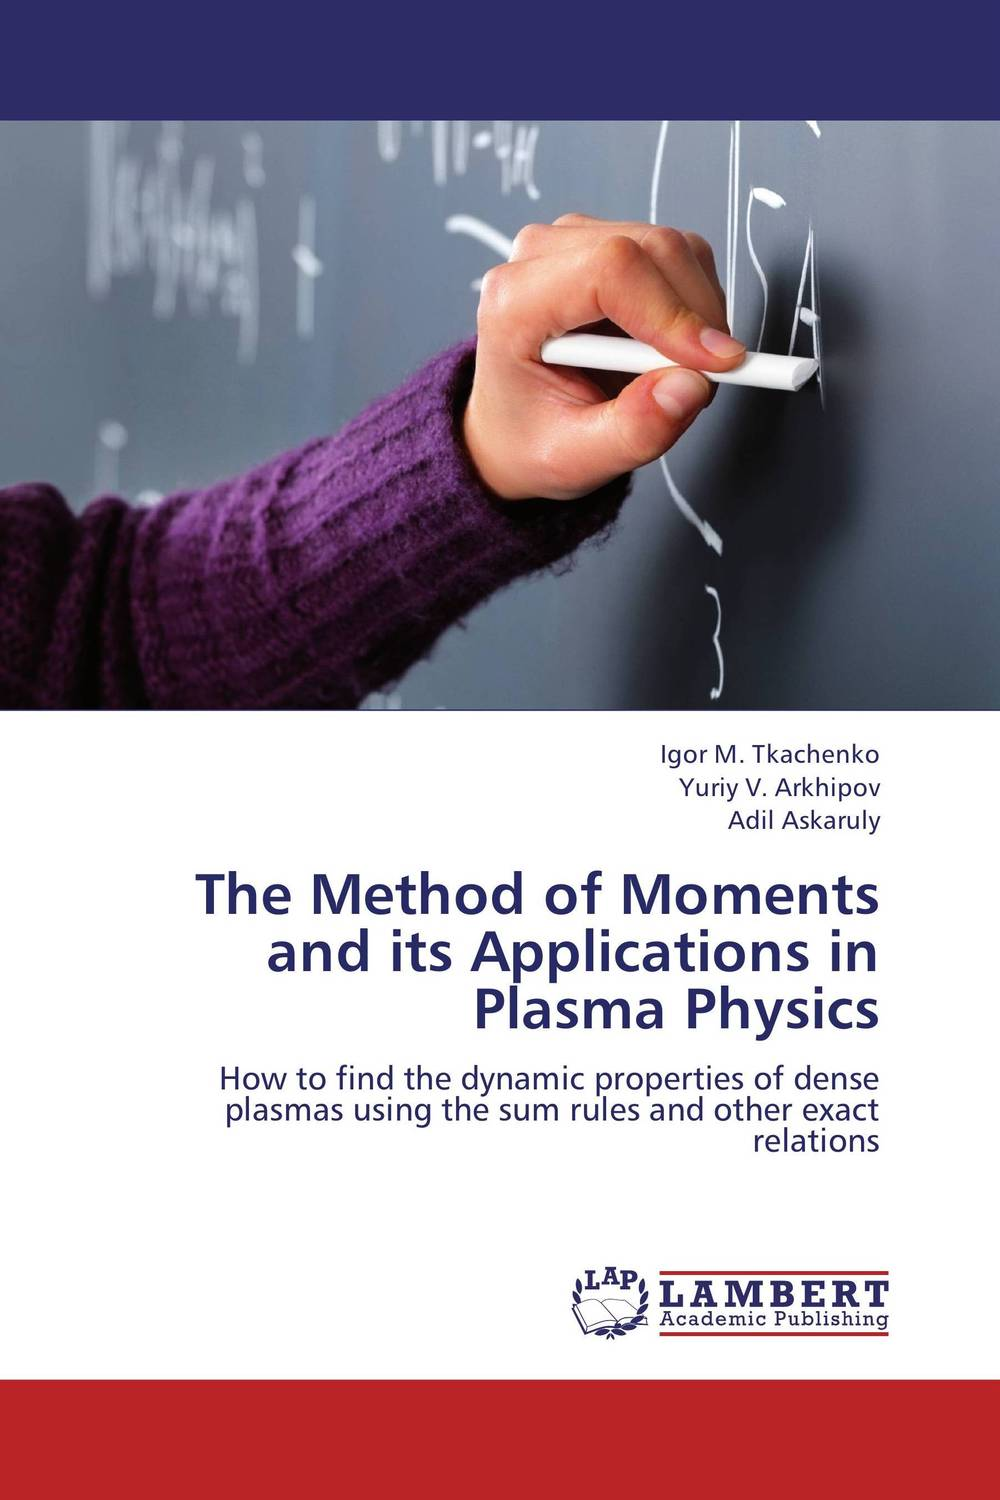 The Method of Moments and its Applications in Plasma Physics text book of plasma physics